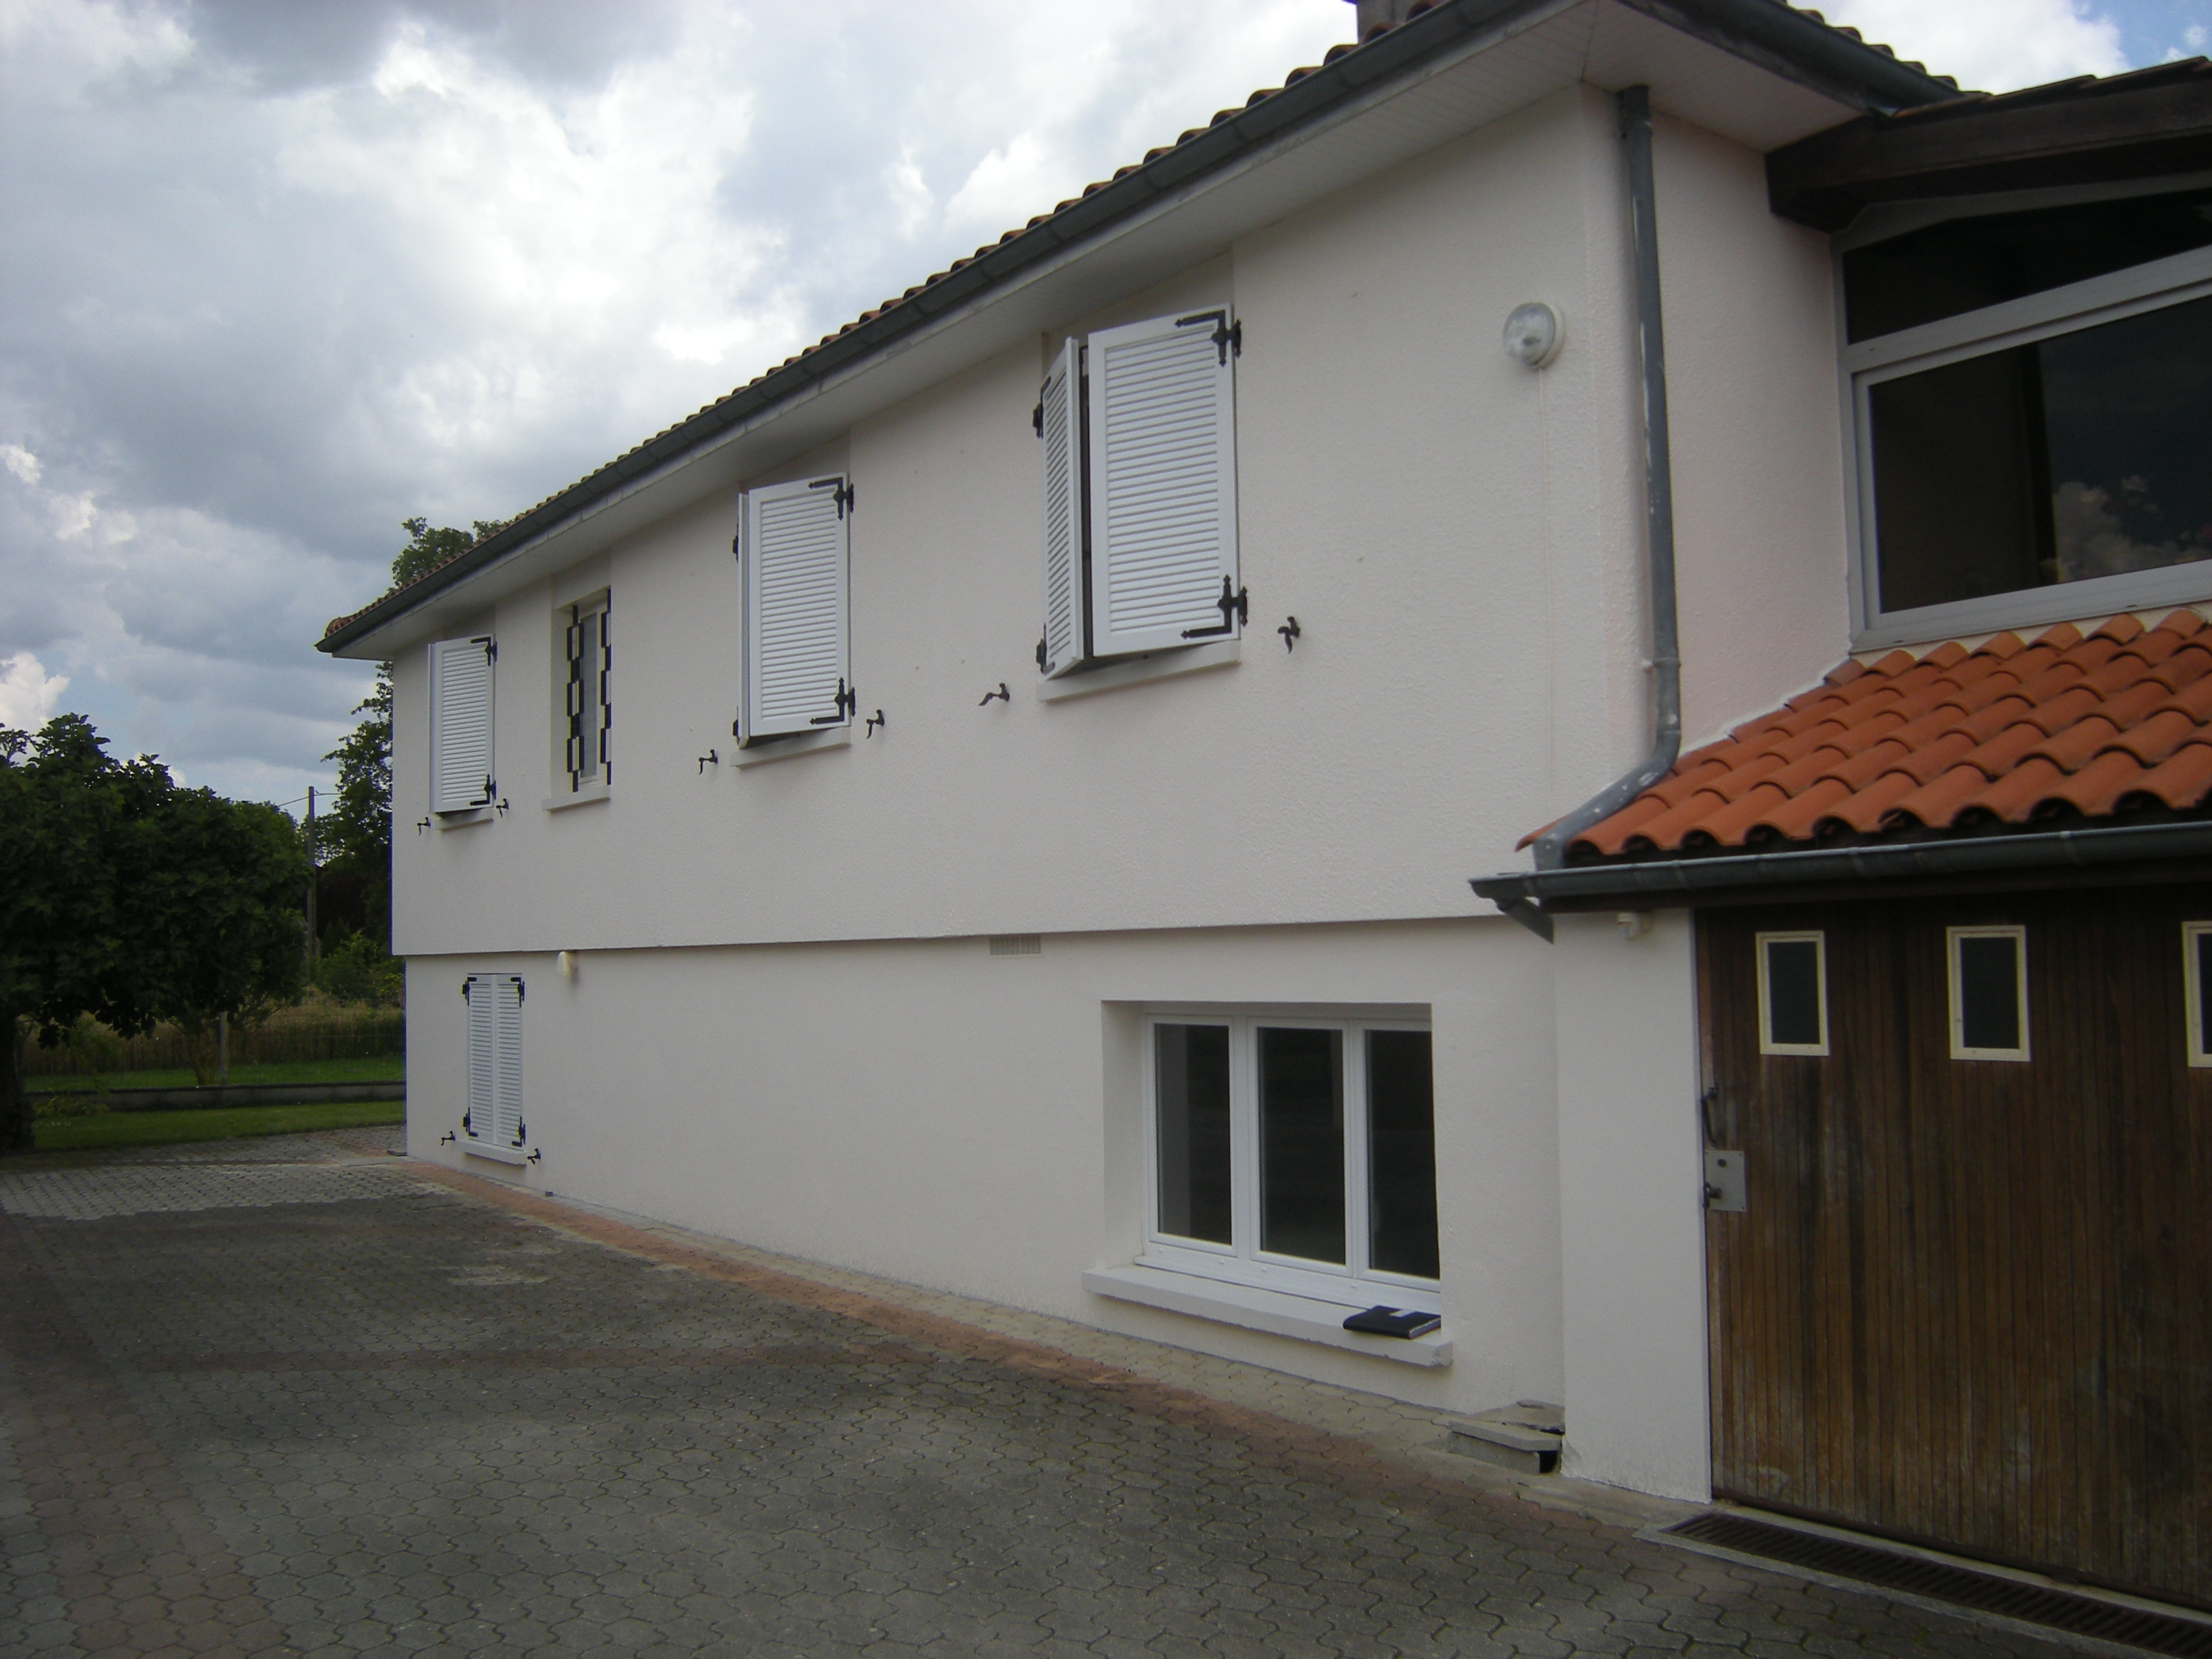 Isolation maison par exterieur avant travaux isolation for Isolation maison exterieur